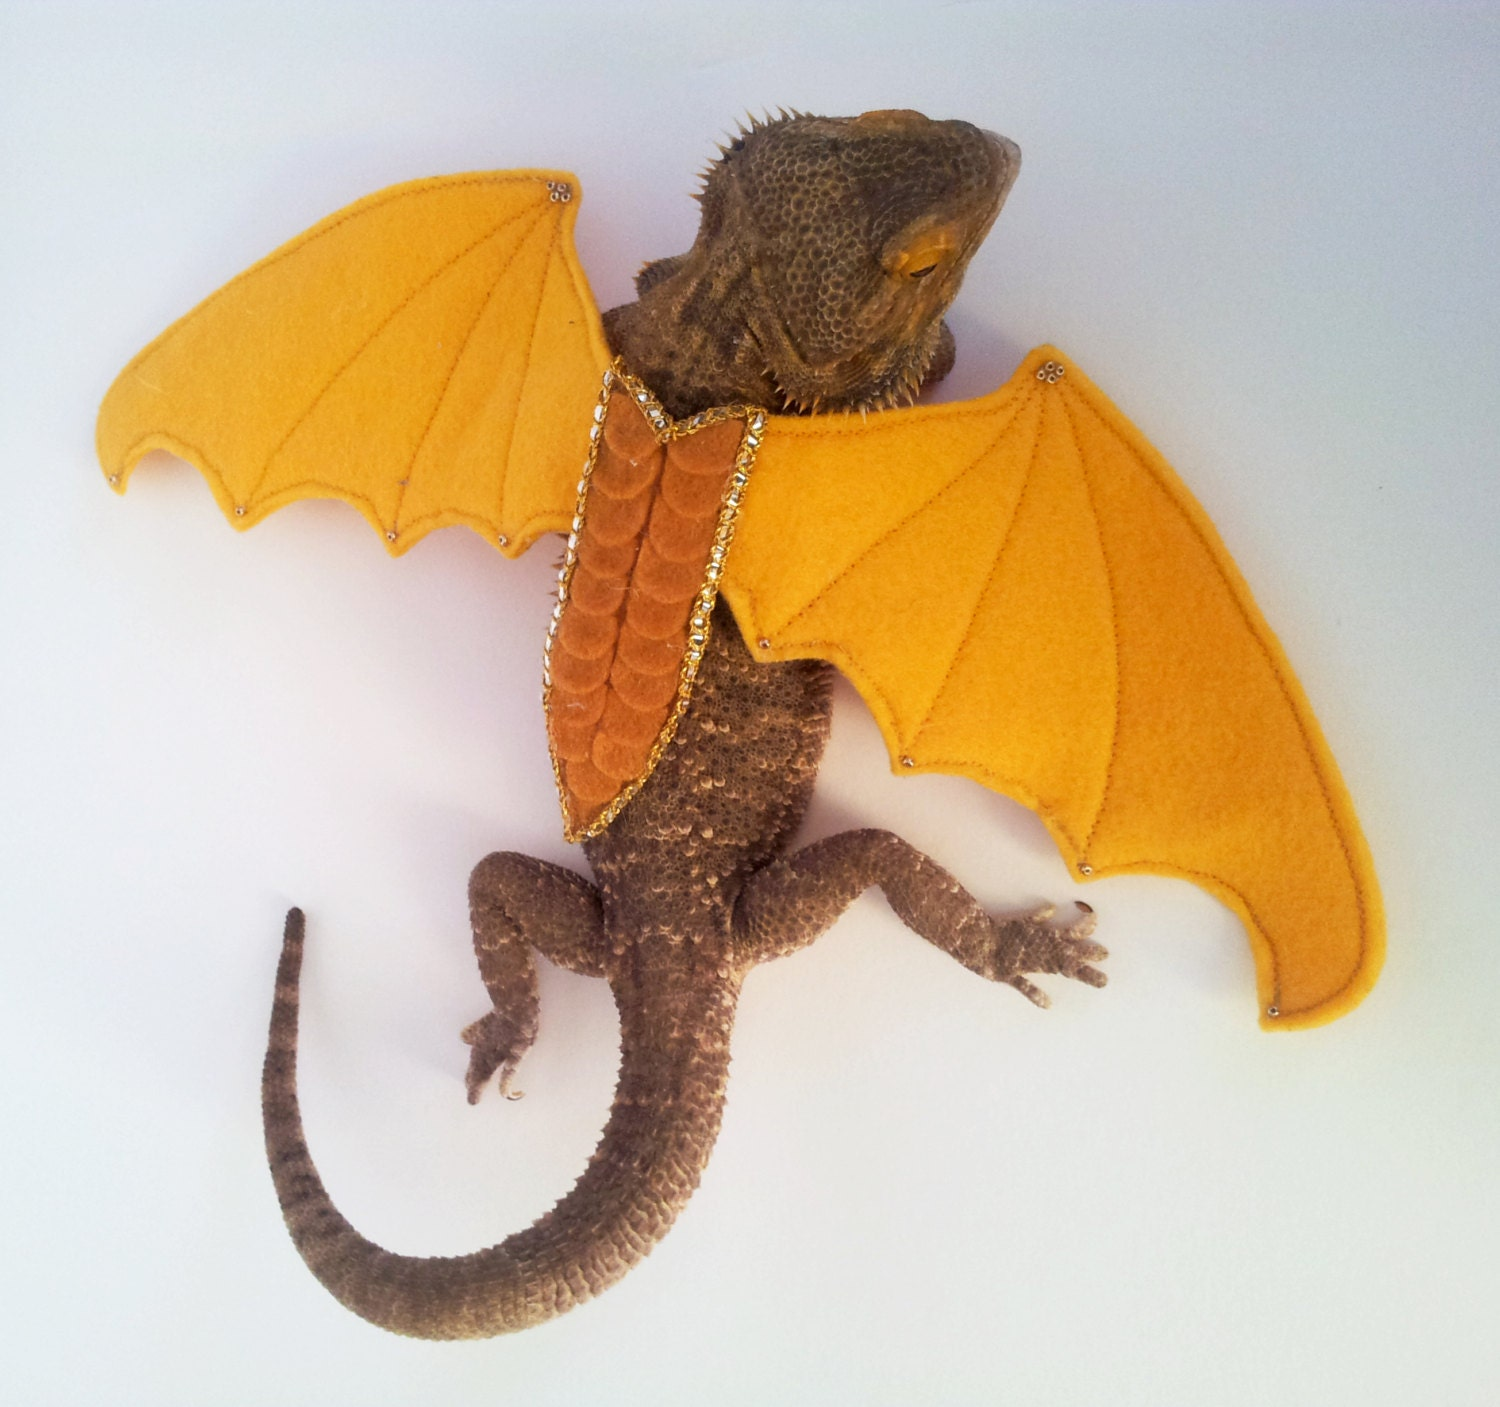 Bearded Dragon Wings Goldenrod by GetSTUFT on Etsy - photo#10